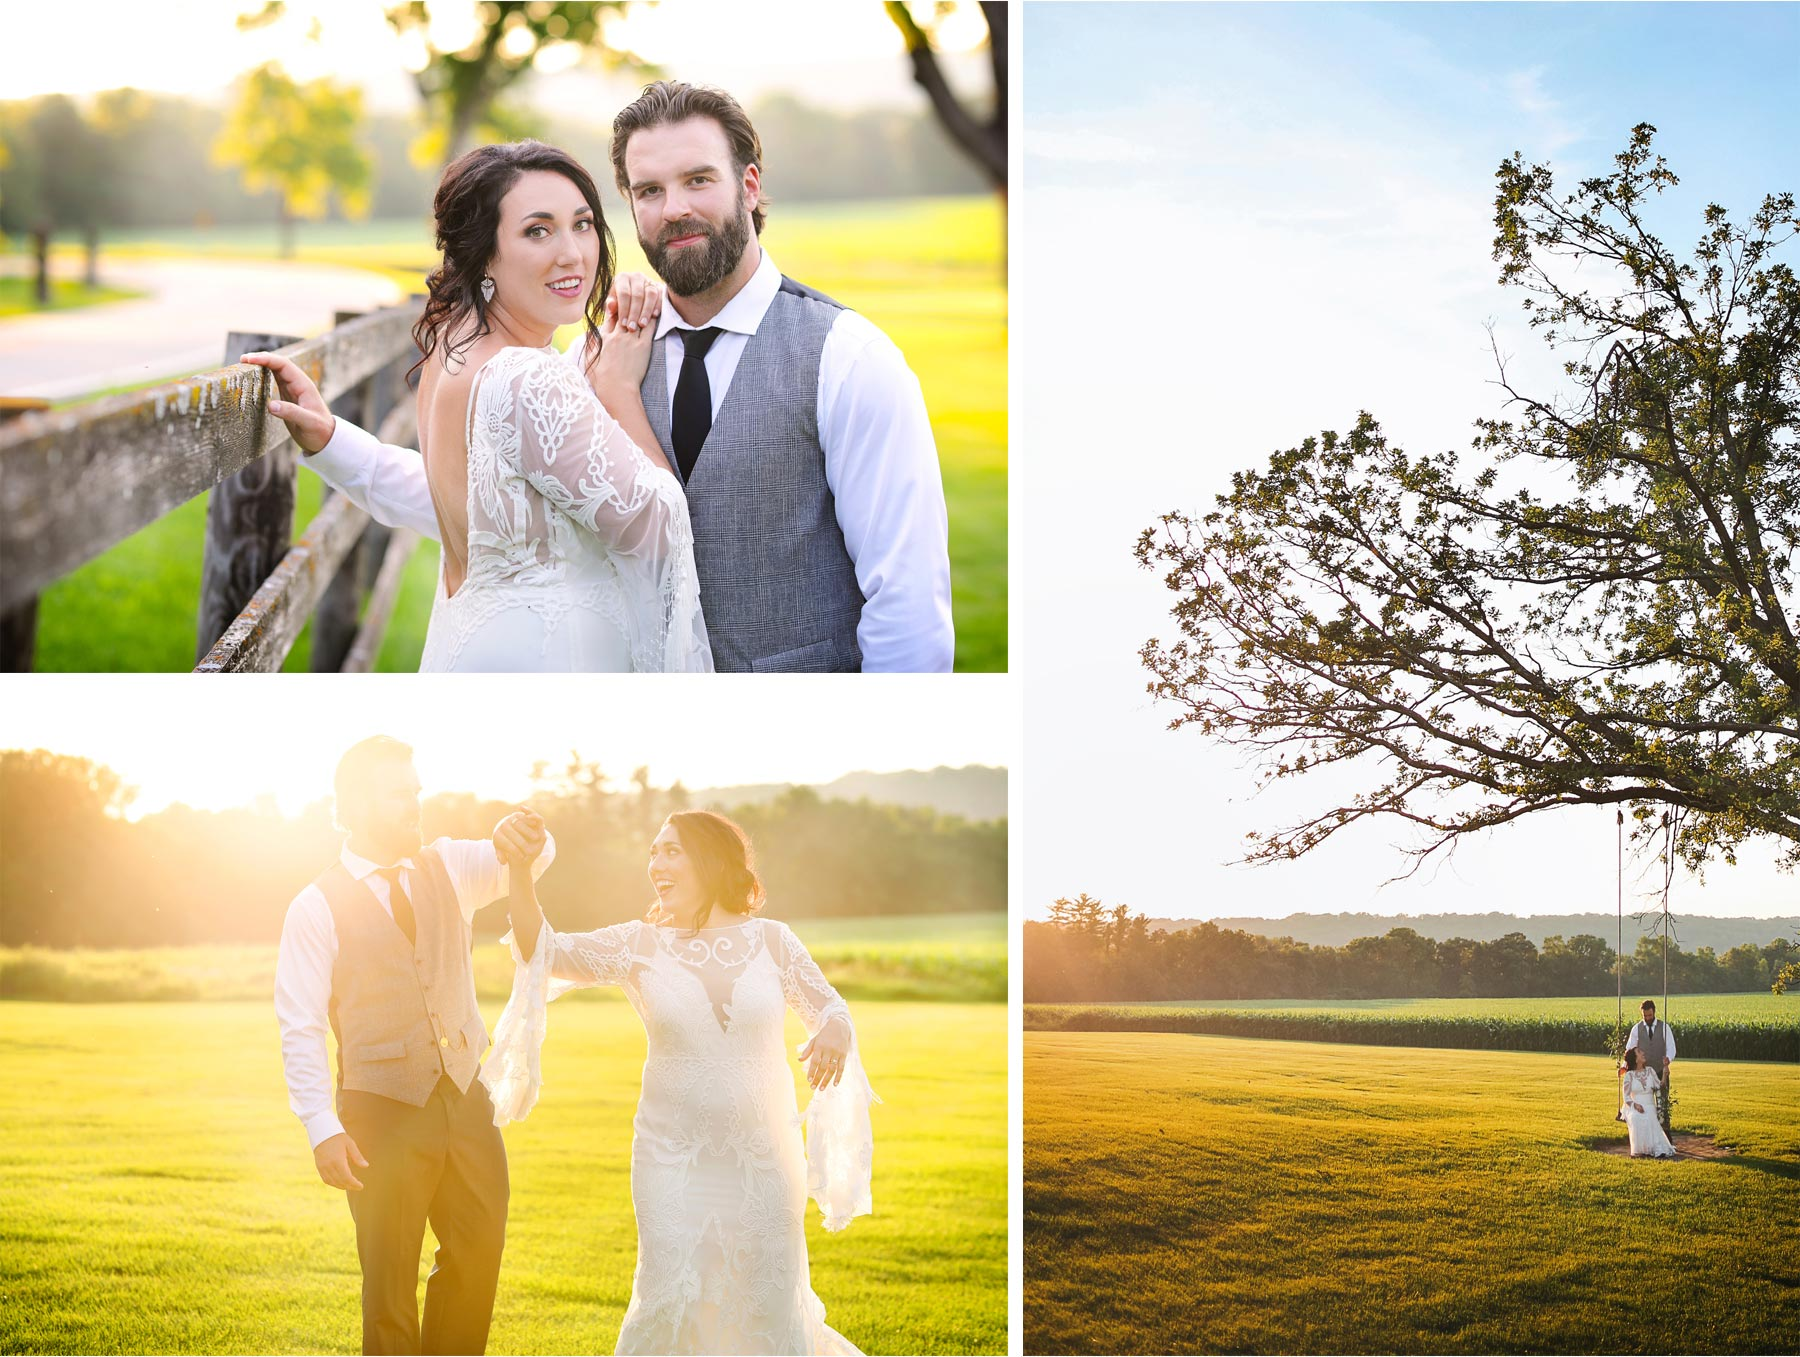 20-Vick-Photography-Rochester-Minnesota-Mayowood-Stone-Barn-Country-Wedding-Summer-Outdoor-Sunset-Bride-Groom-Swing-Lizz-and-Brady.jpg